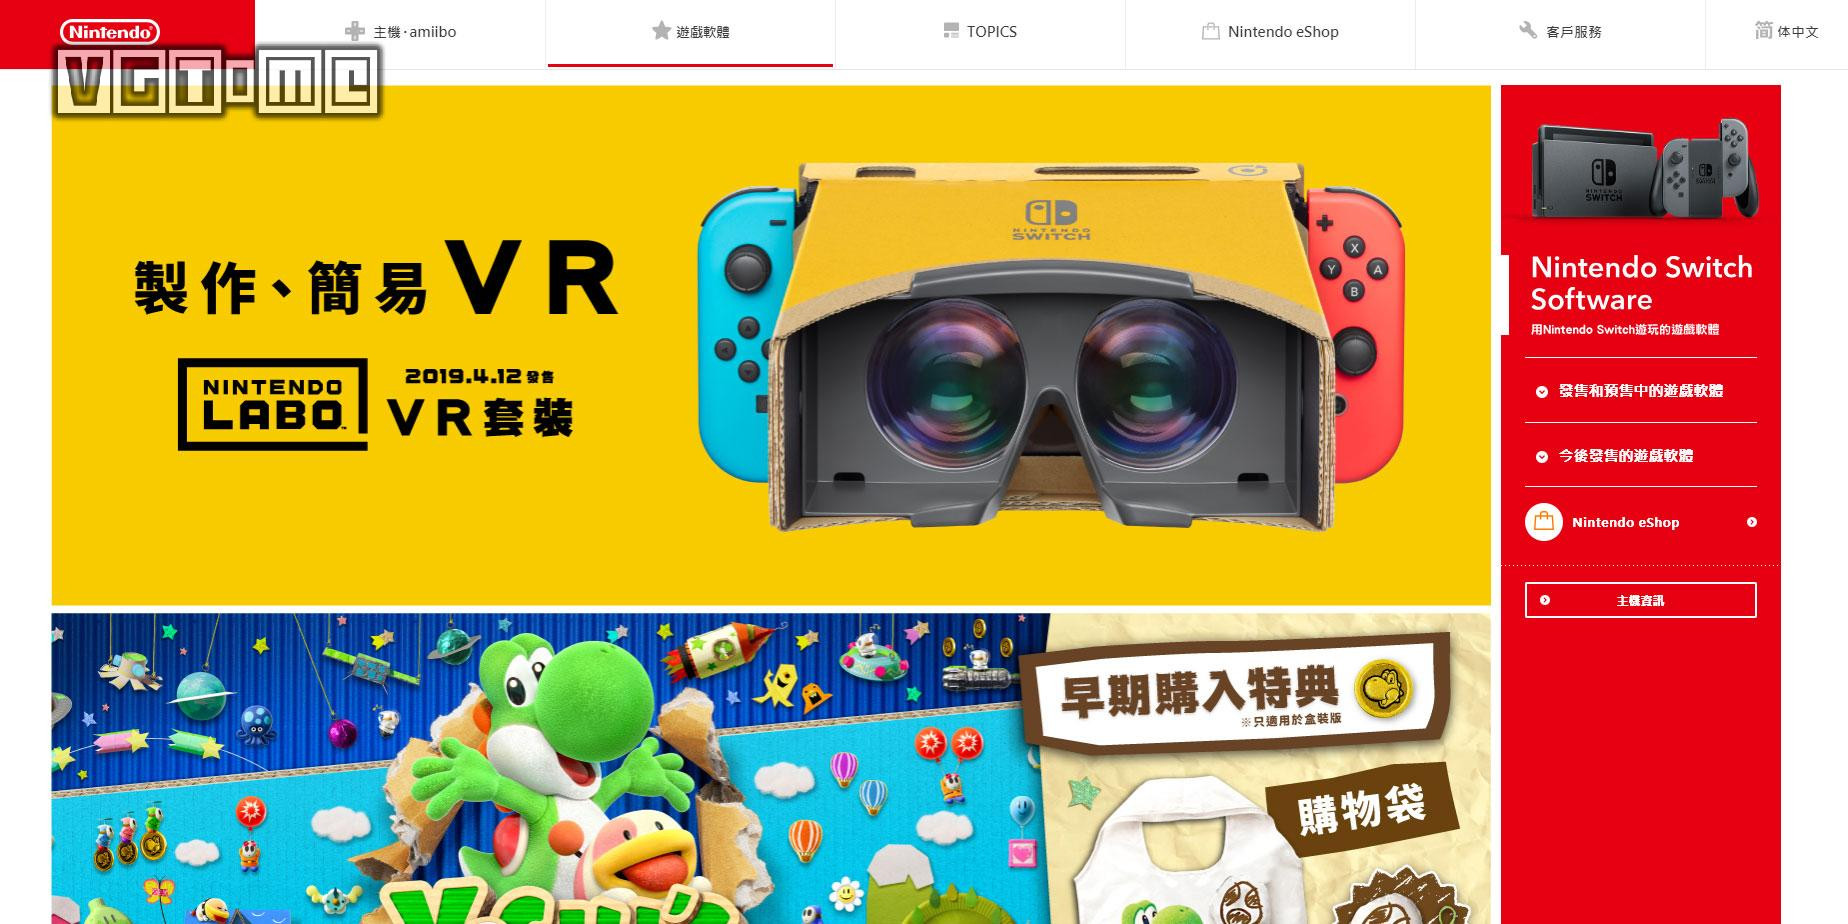 The Chinese Mall of Nintendo Harbour Service eShop is online, but its function is not perfect.